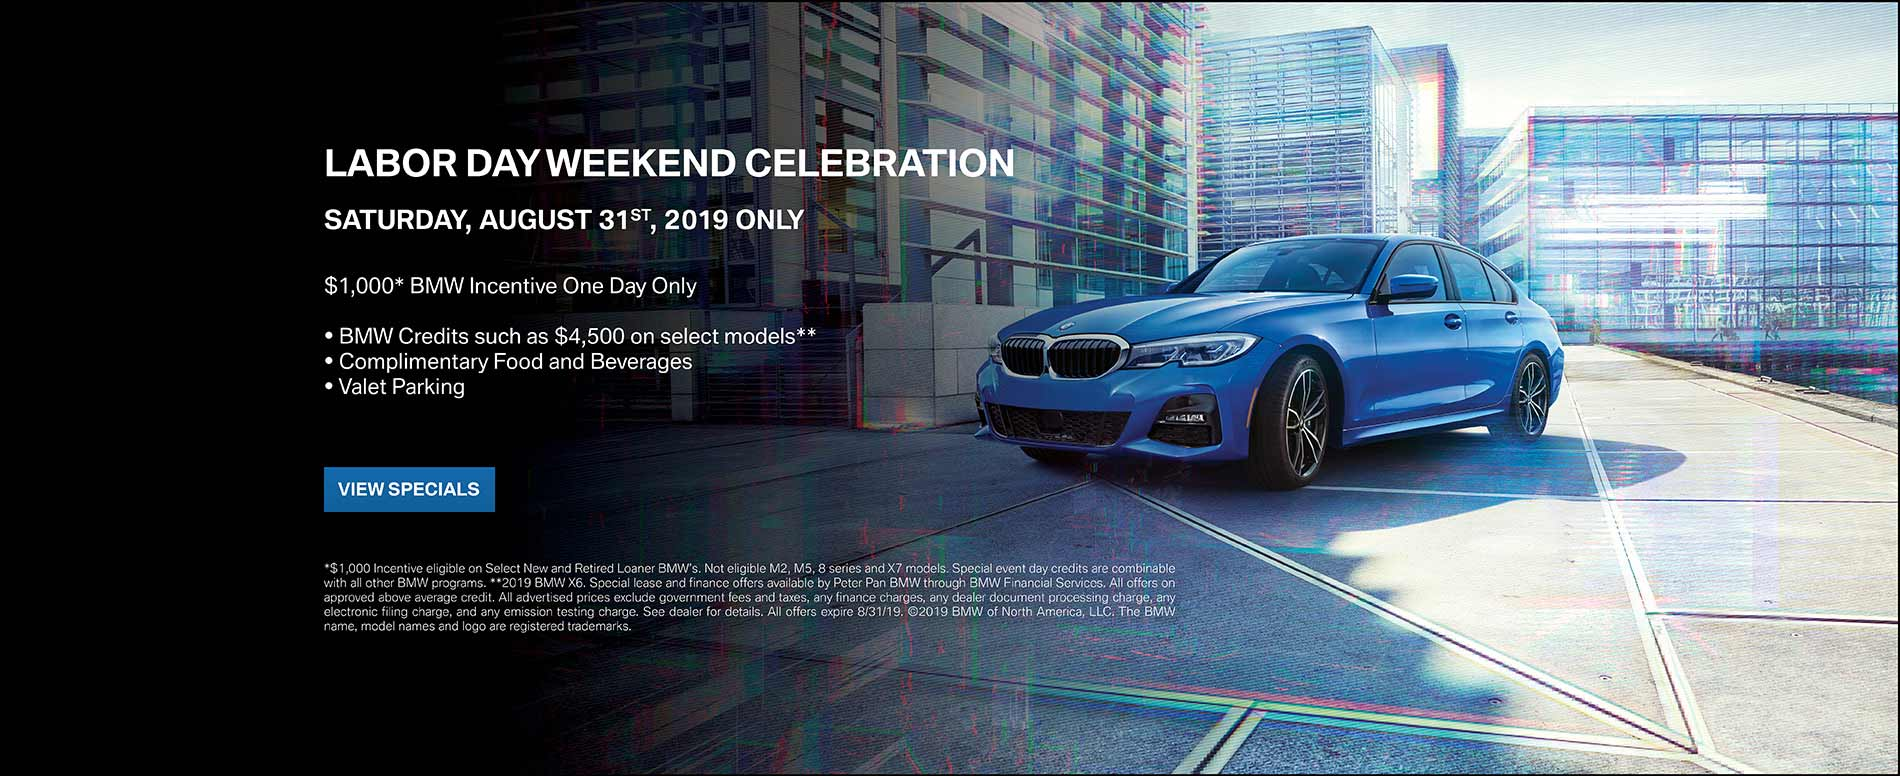 Used Cars Bay Area >> Bmw New Used Car Dealer New Used Cars In San Francisco San